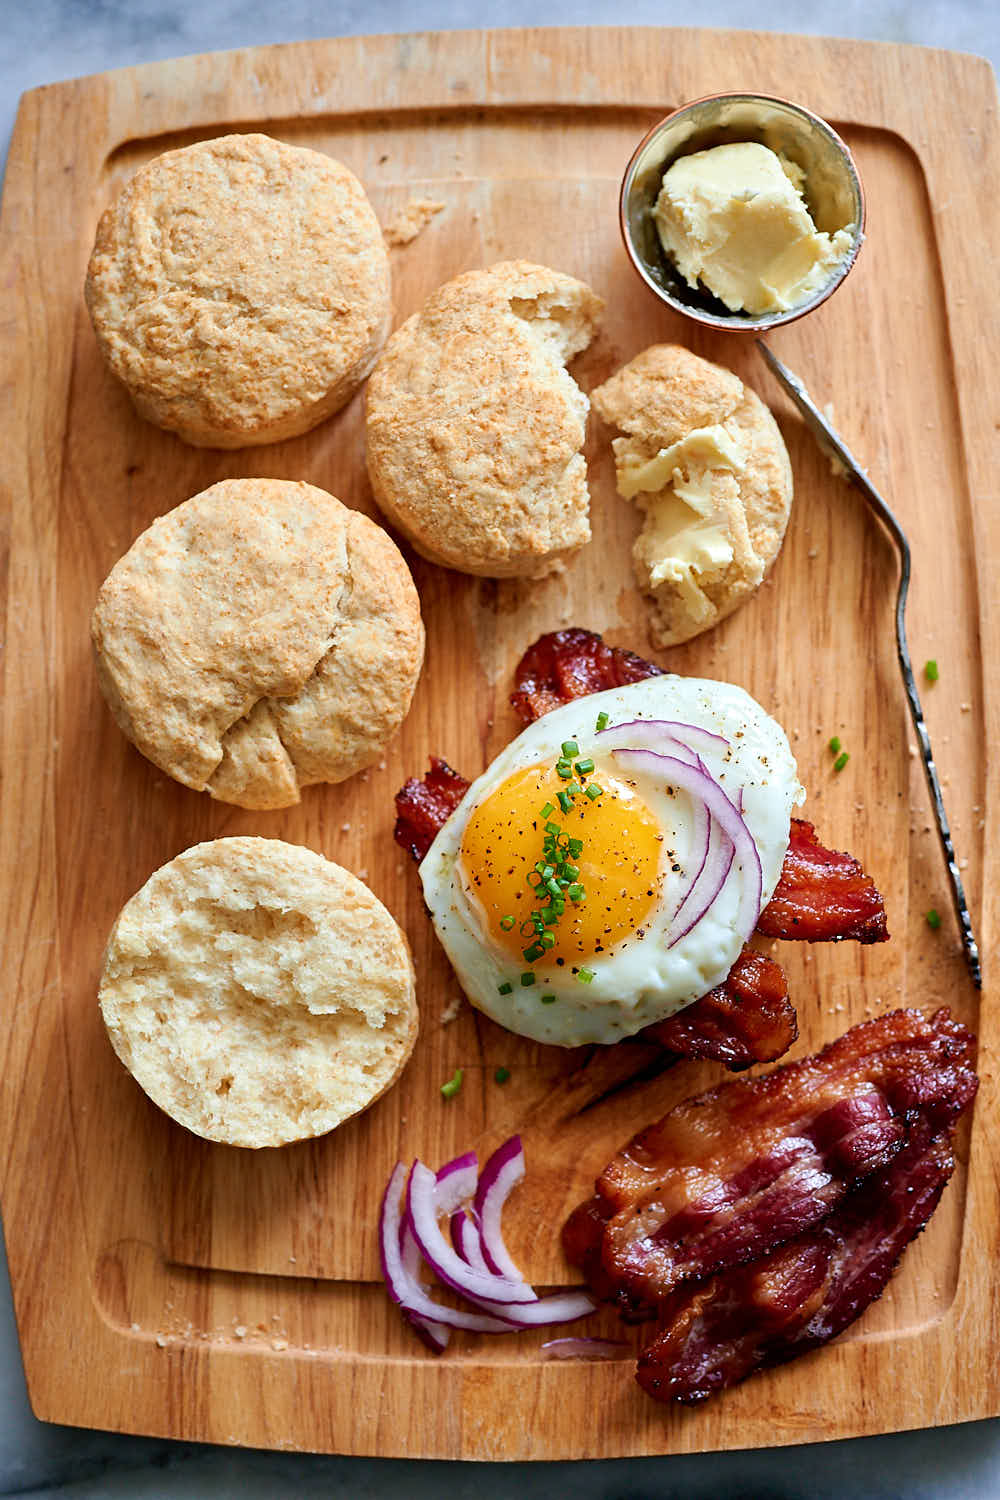 sourdough biscuits with eggs and bacon.